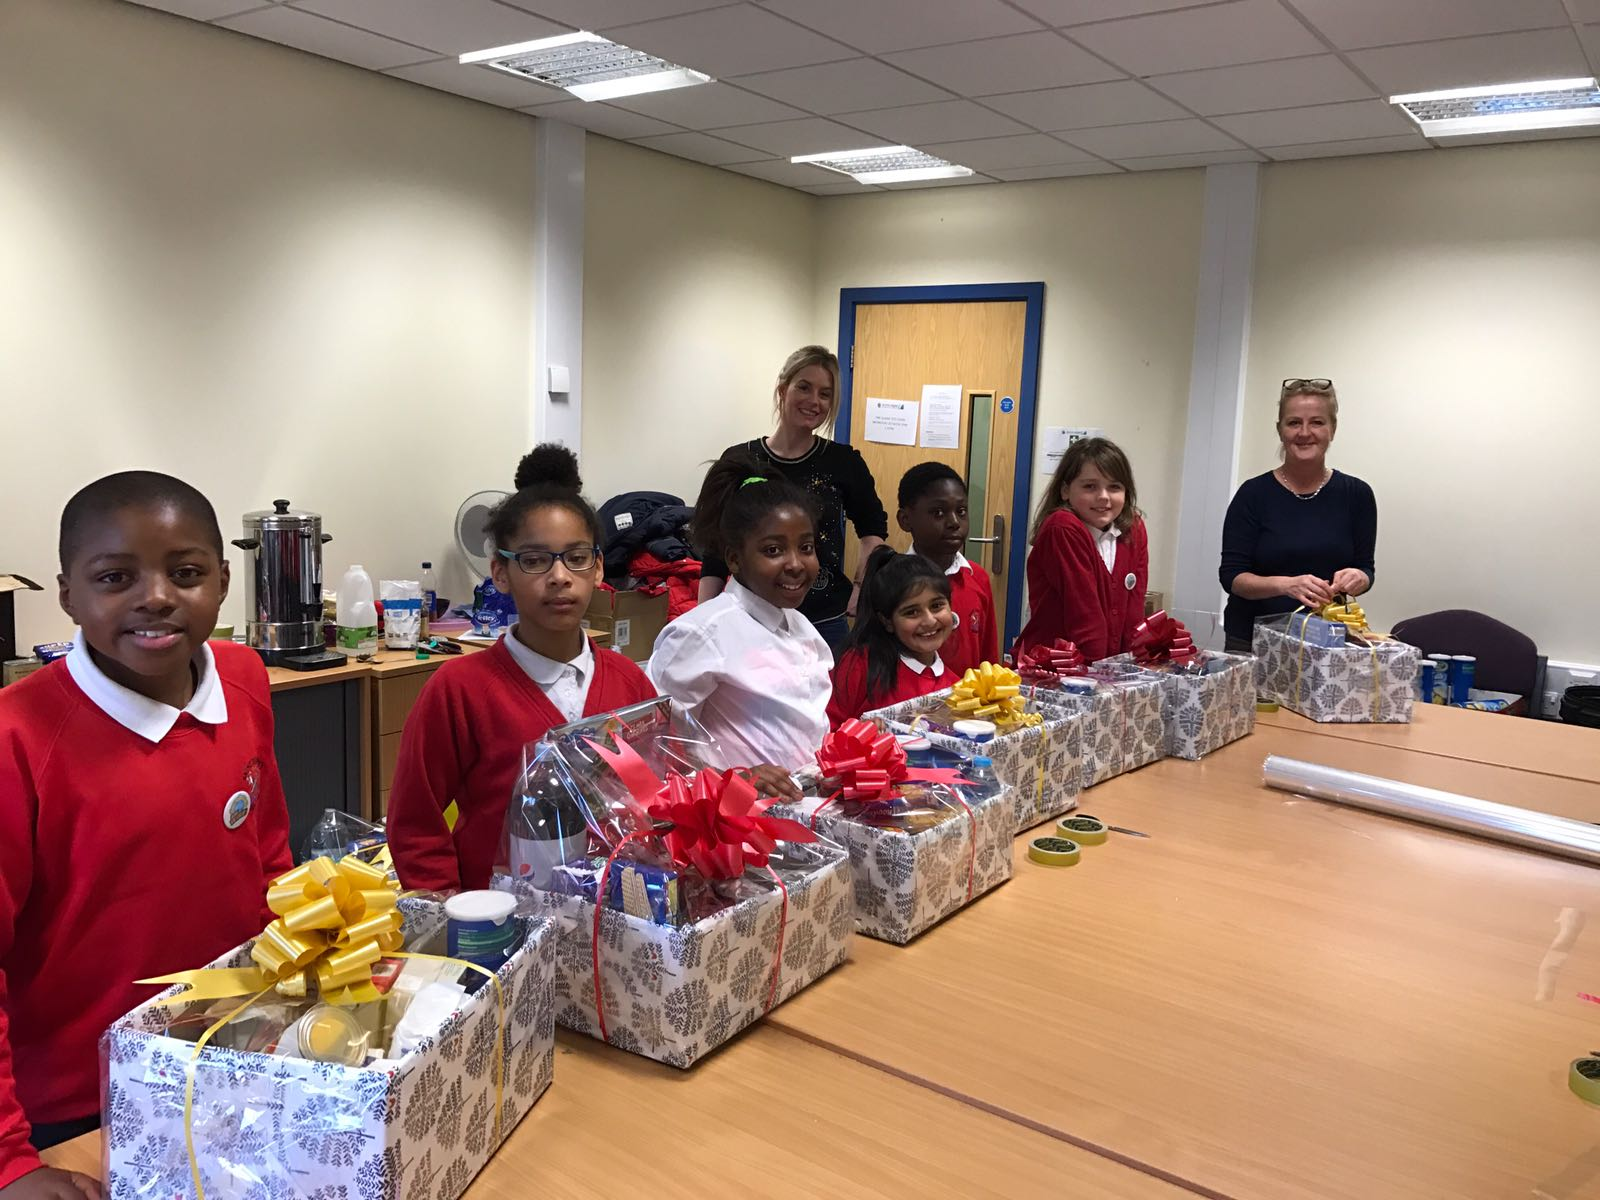 Children from St Joseph's Catholic Primary School Bradford came to help us wrap and pack the hampers